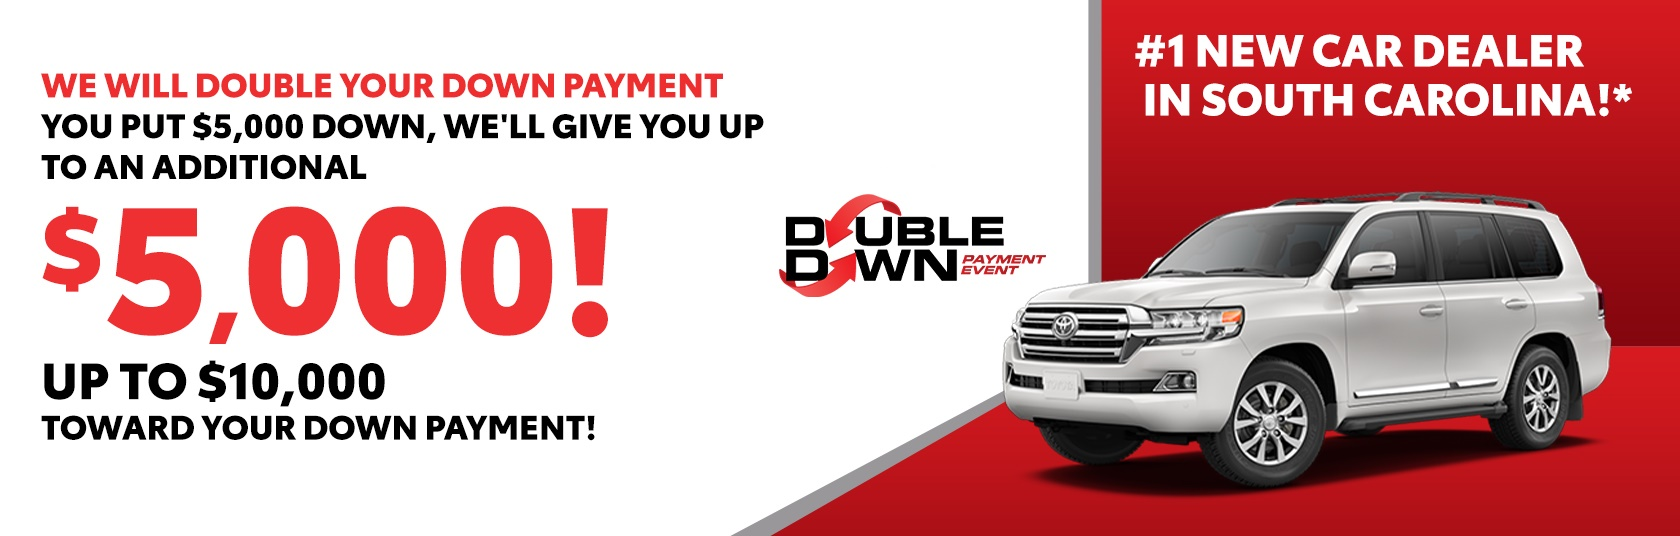 Double Down Payment Event Hendrick Toyota North Charleston North